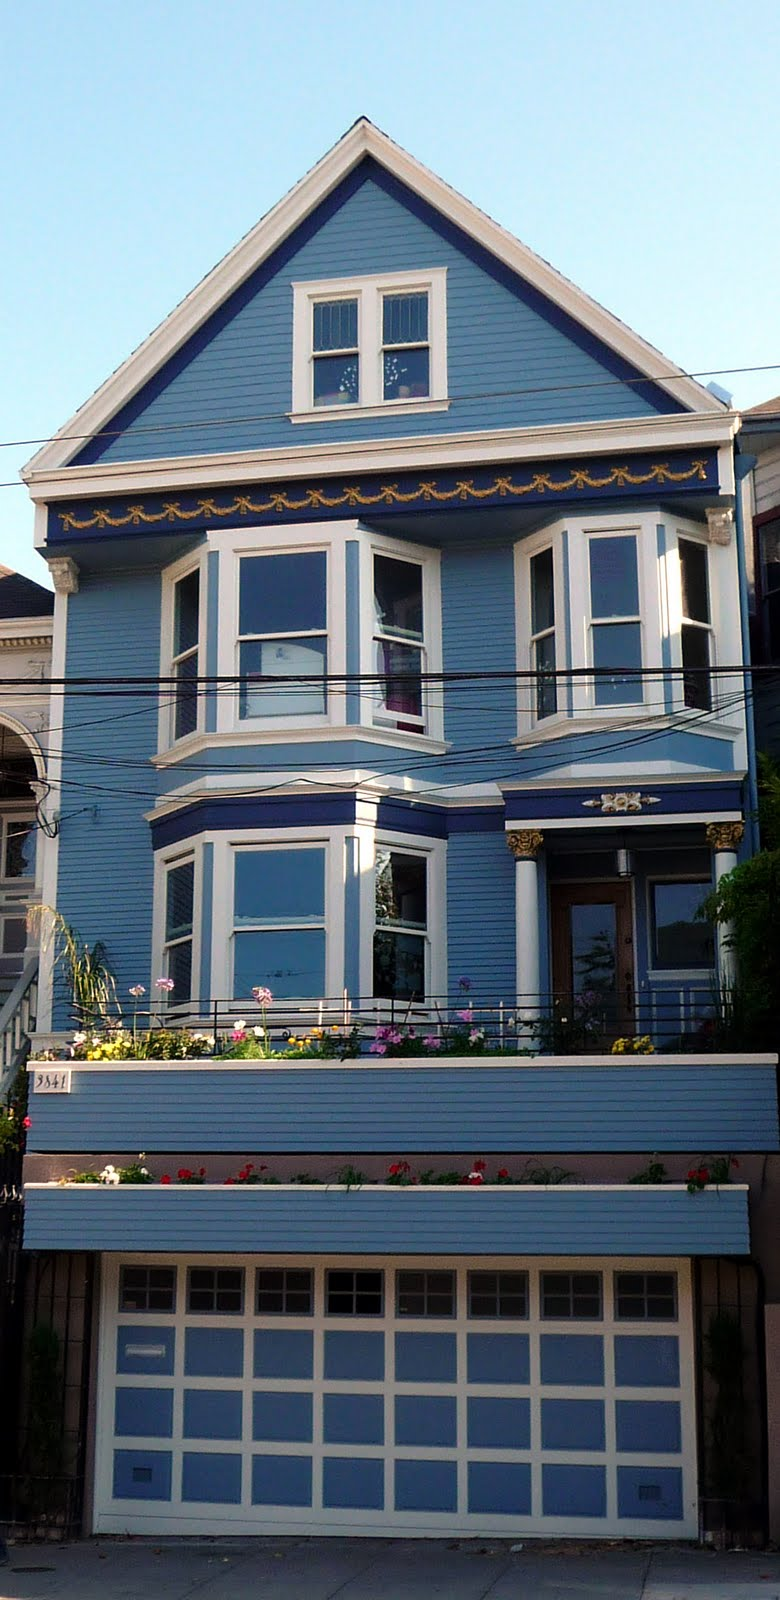 San francisco cali for us - Chanson une maison bleue ...